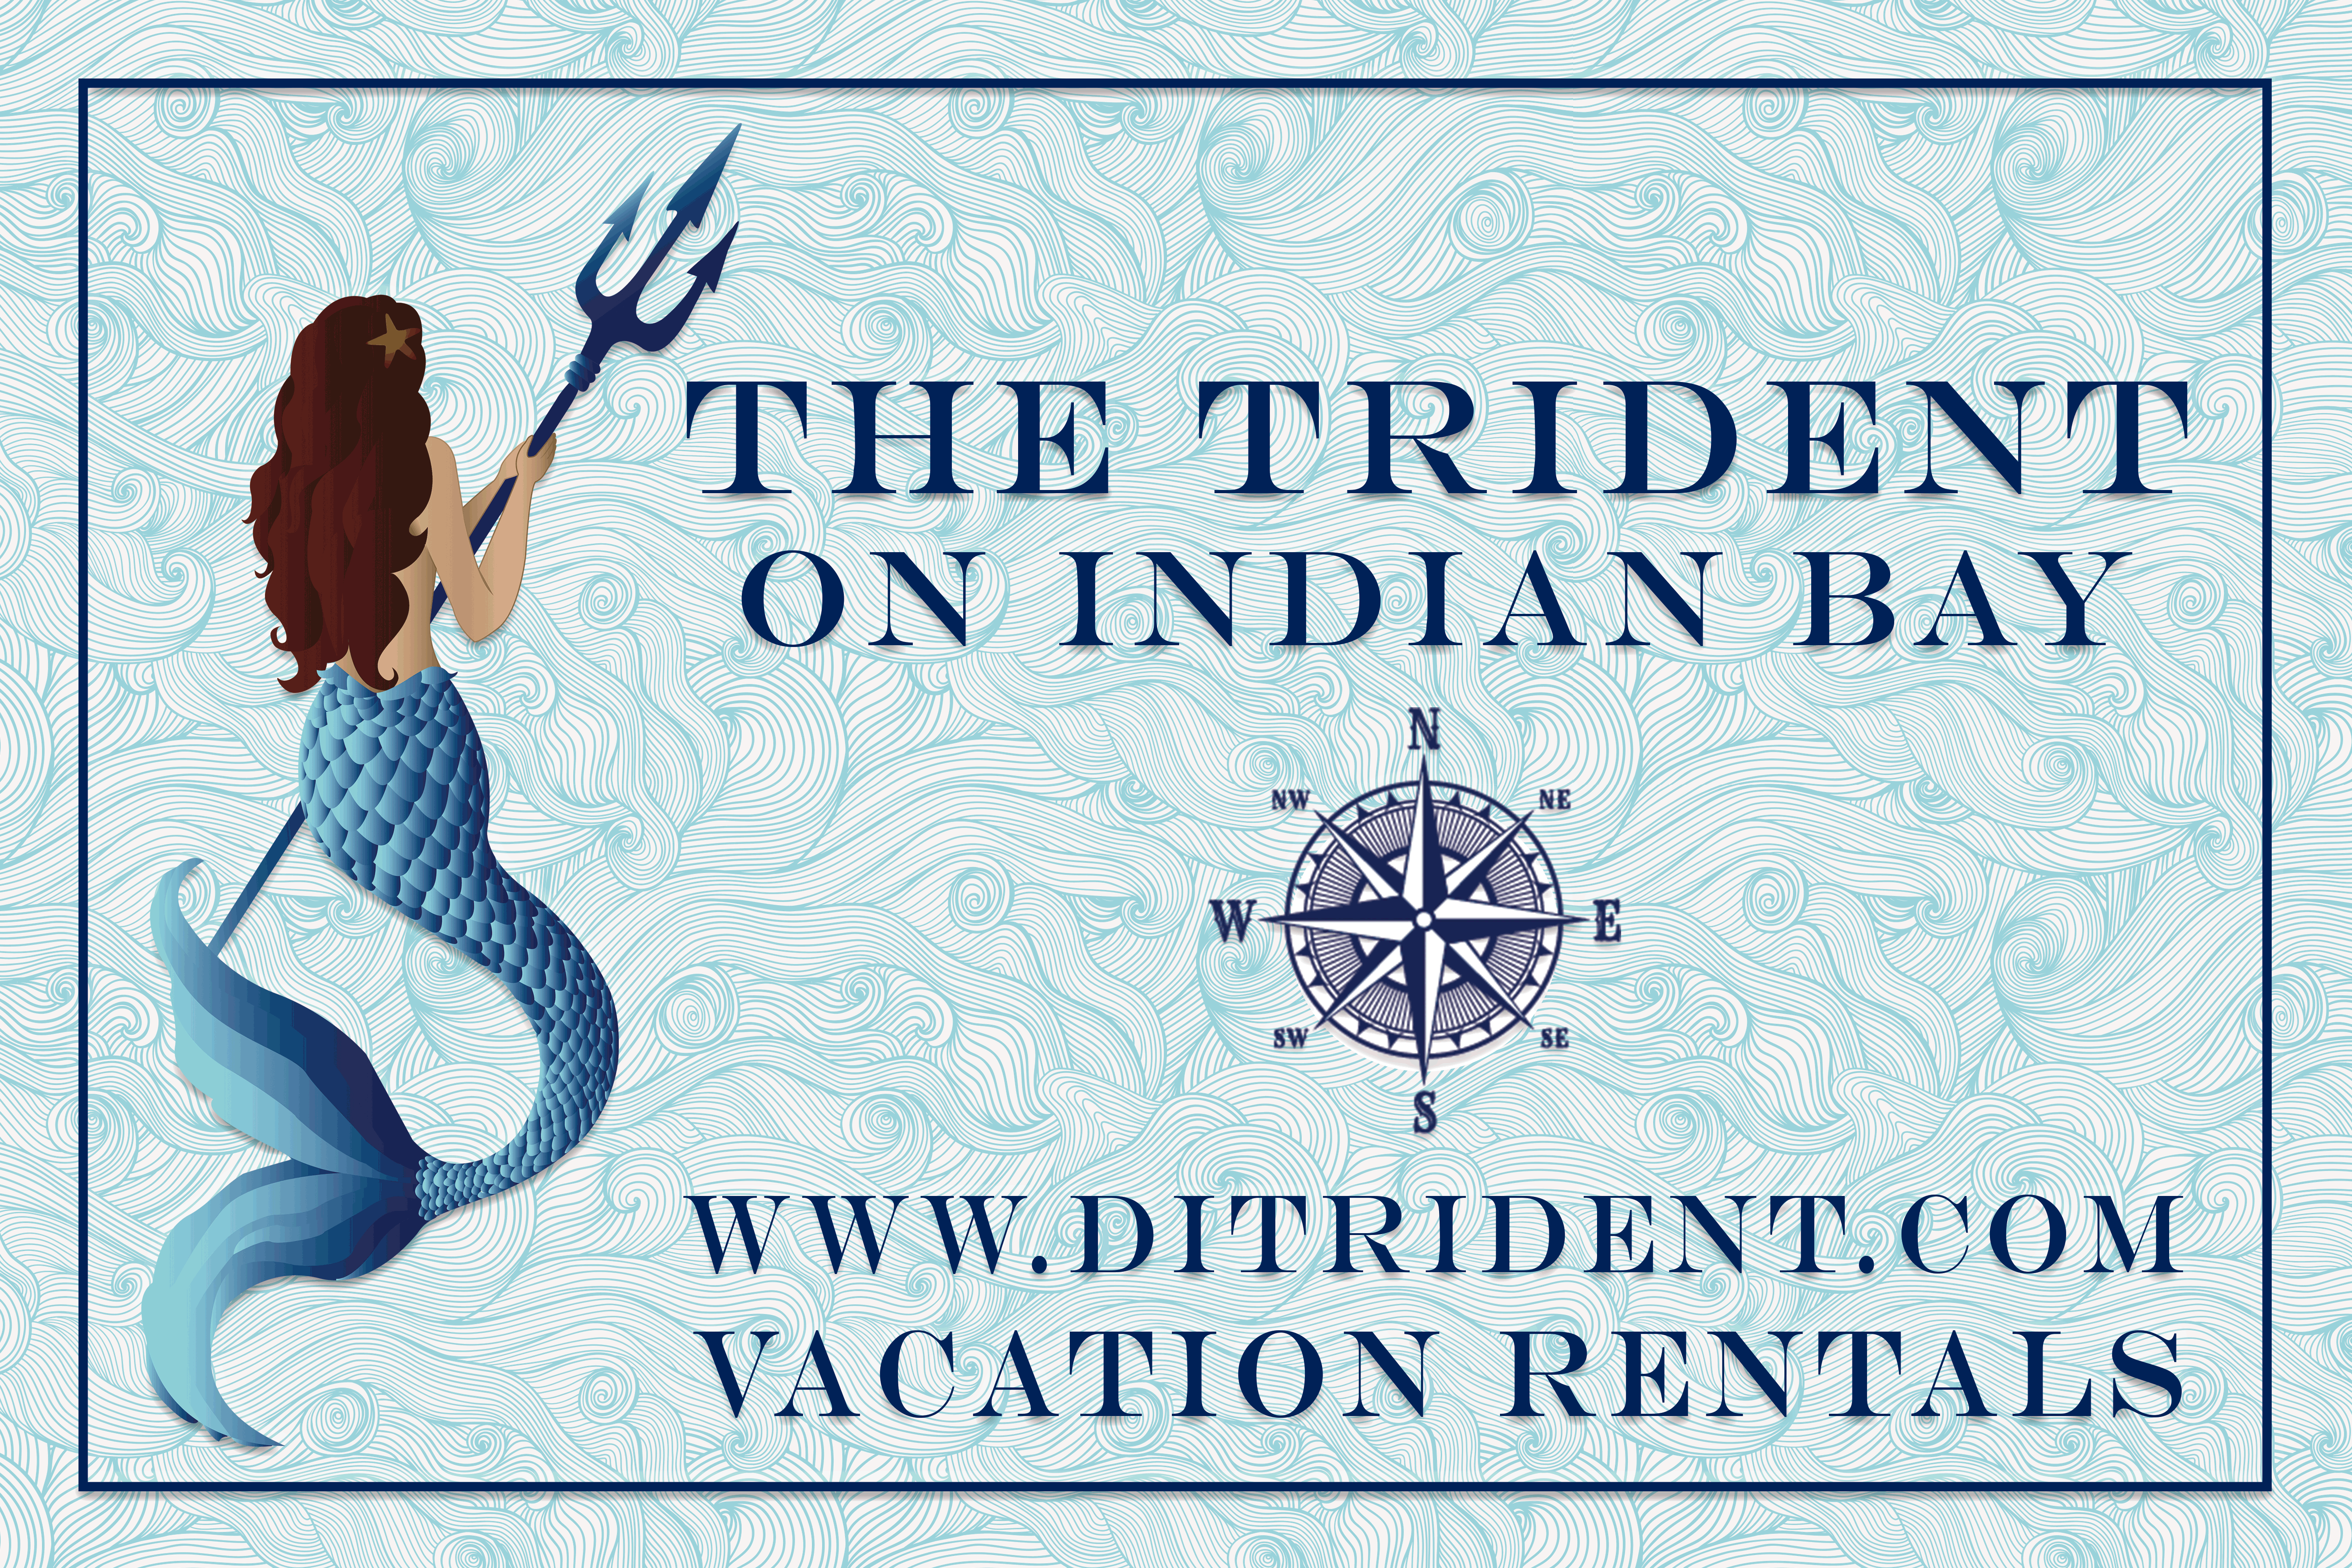 Link to The Trident on Indian Bay vacation rentals